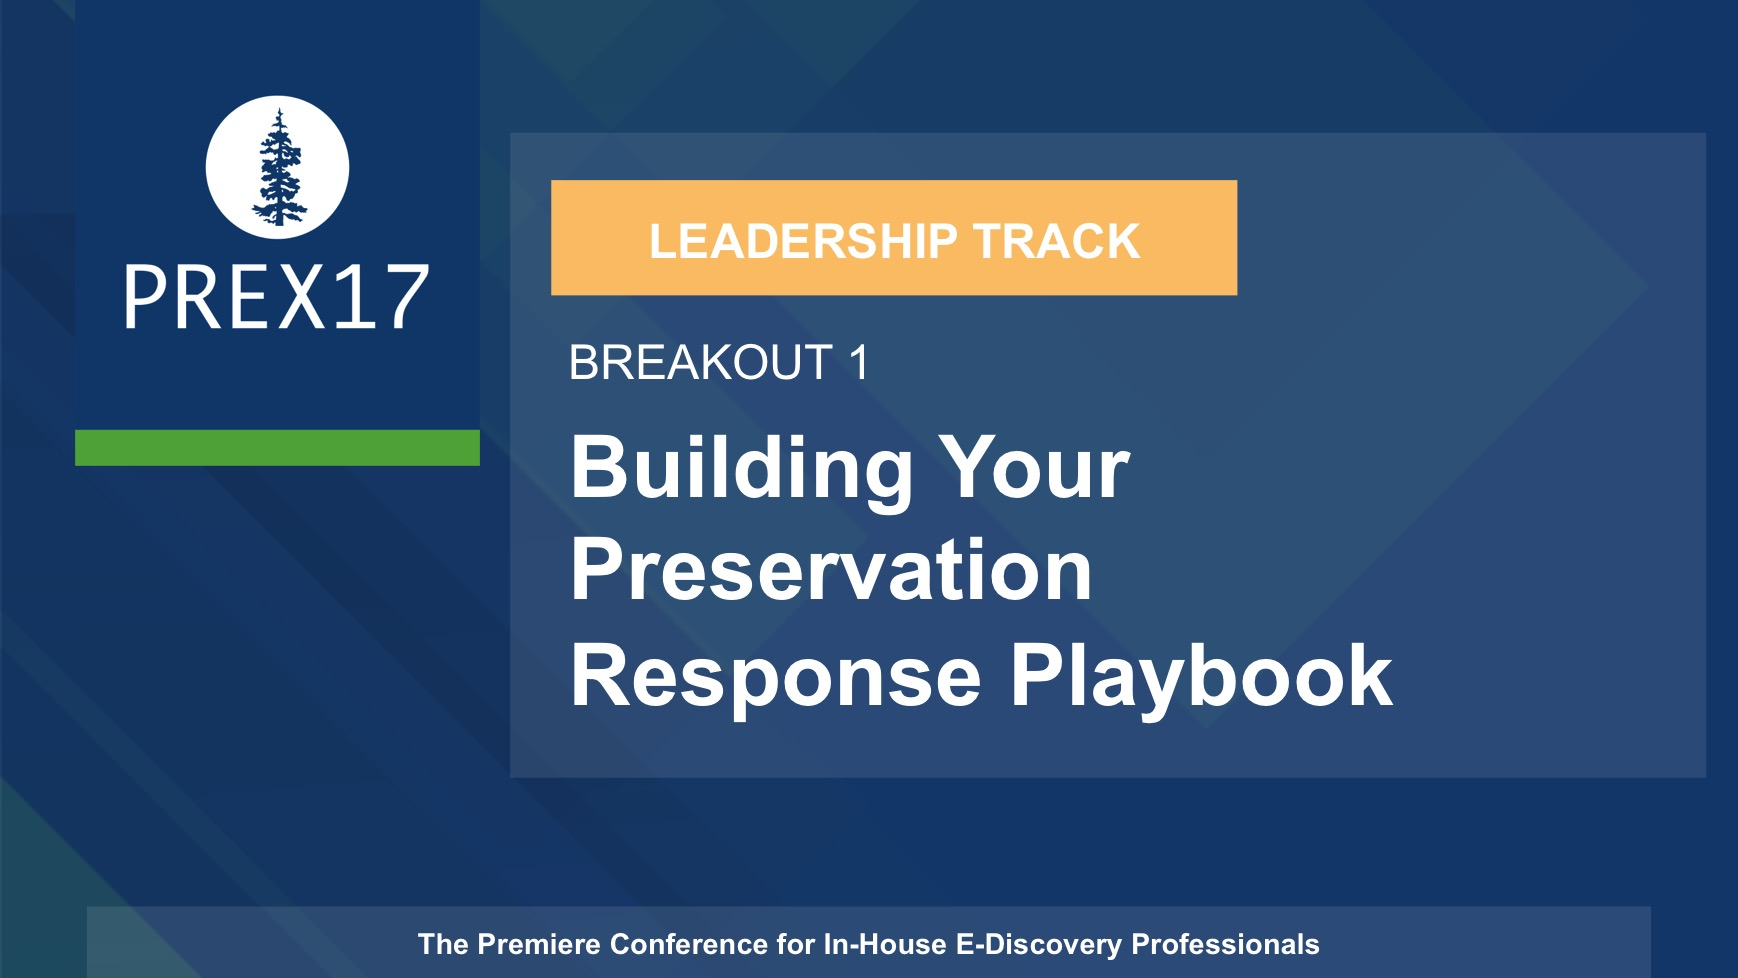 (Breakout 1 - Leadership) Building Your Preservation Response Playbook